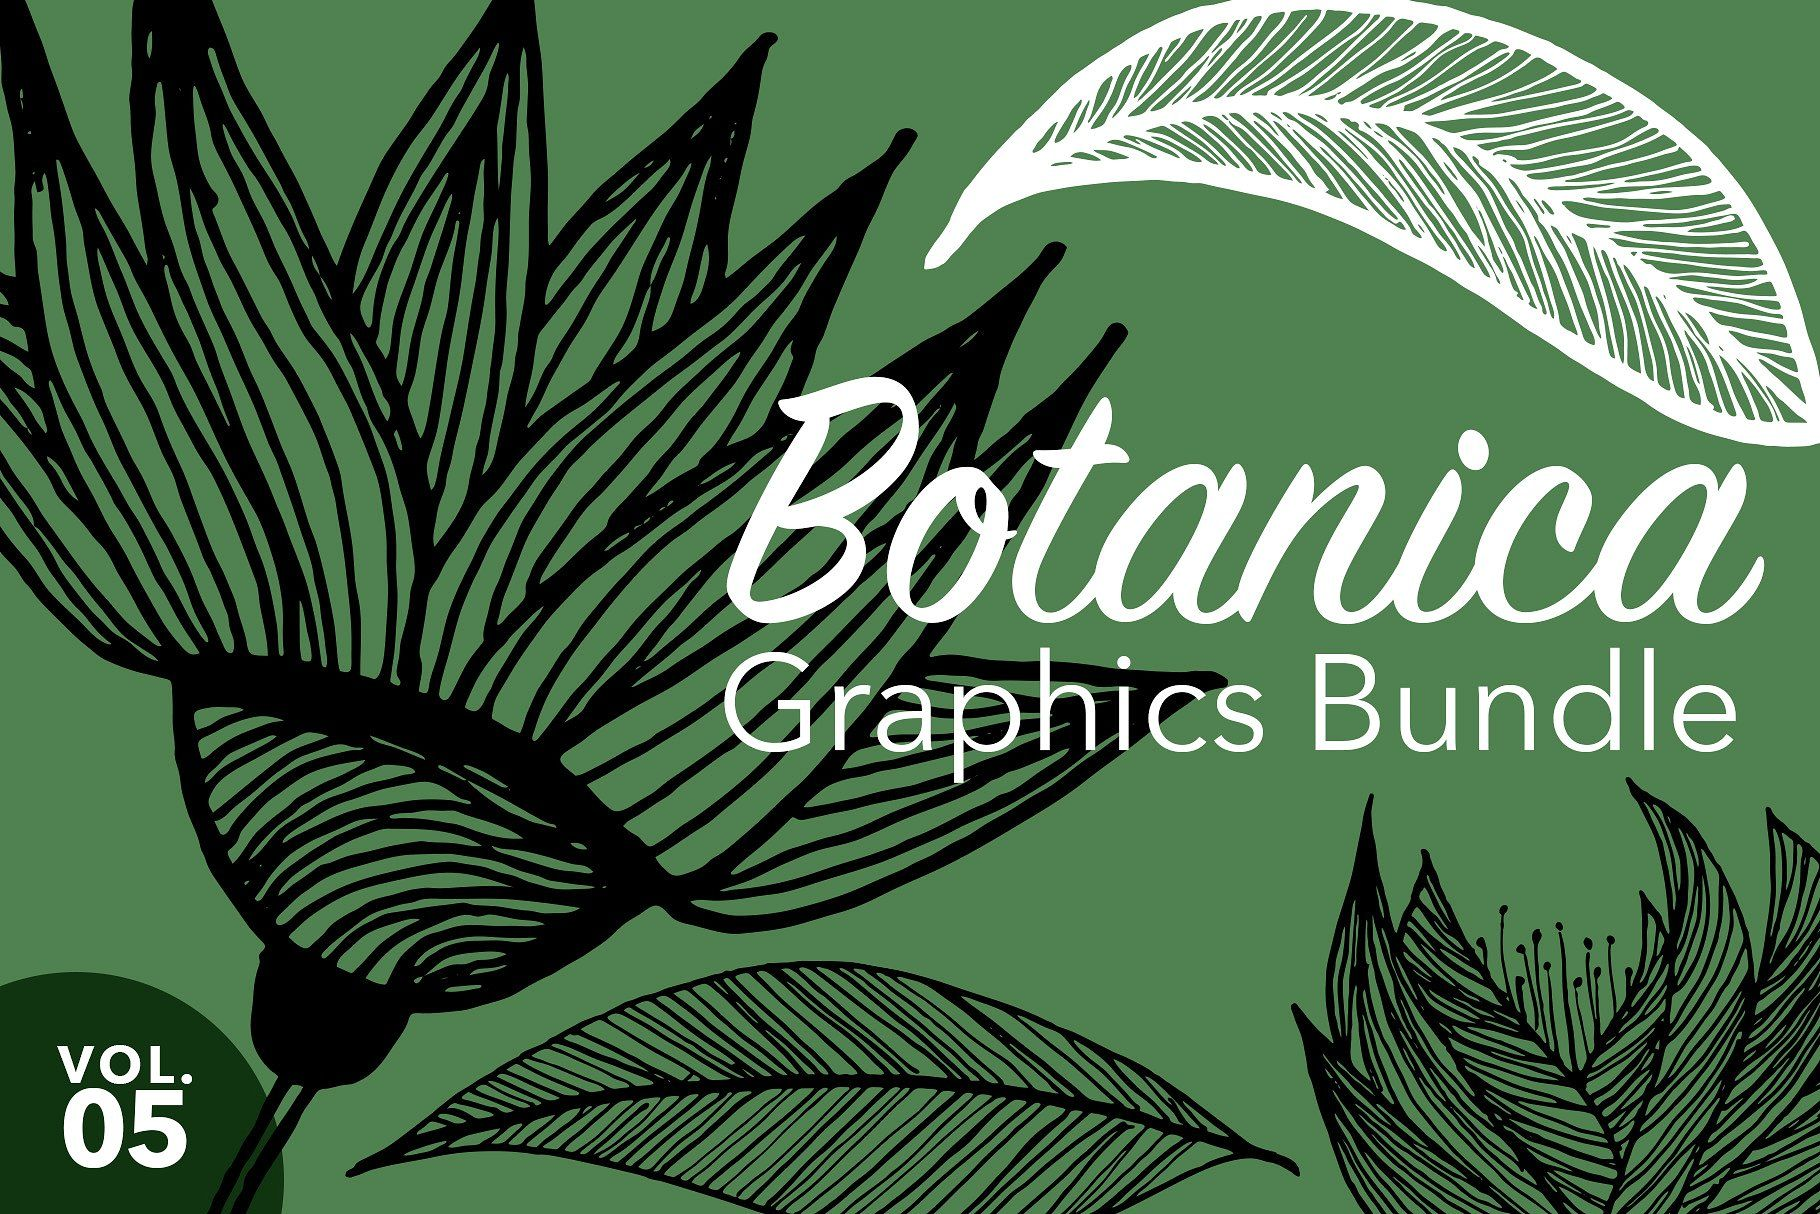 Nature Graphics Bundle Vol 5 With Images Nature Graphic Graphic Illustration